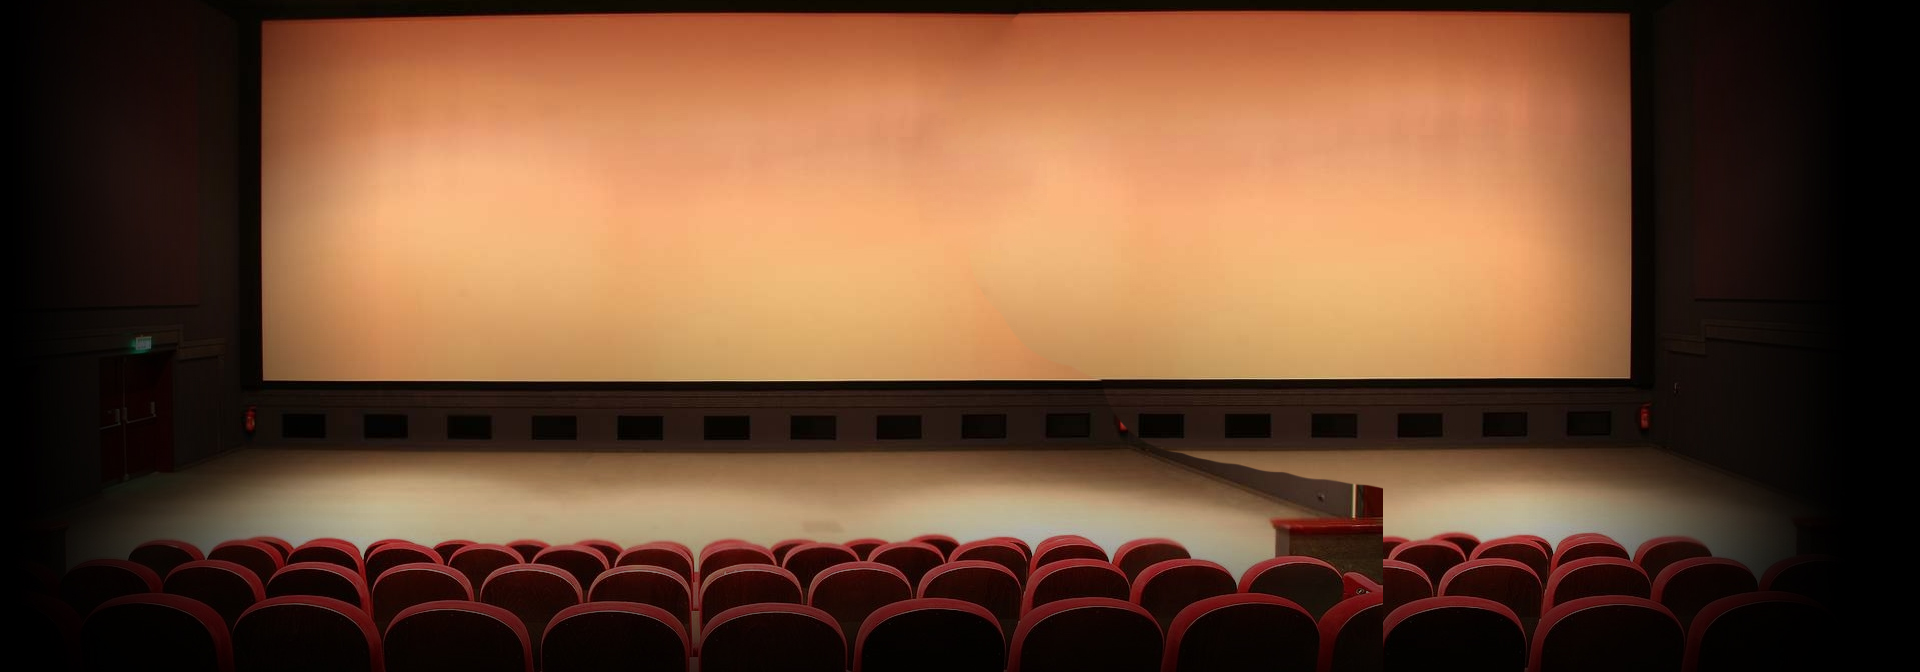 cinema background  screen  auditorium  film background image for free download